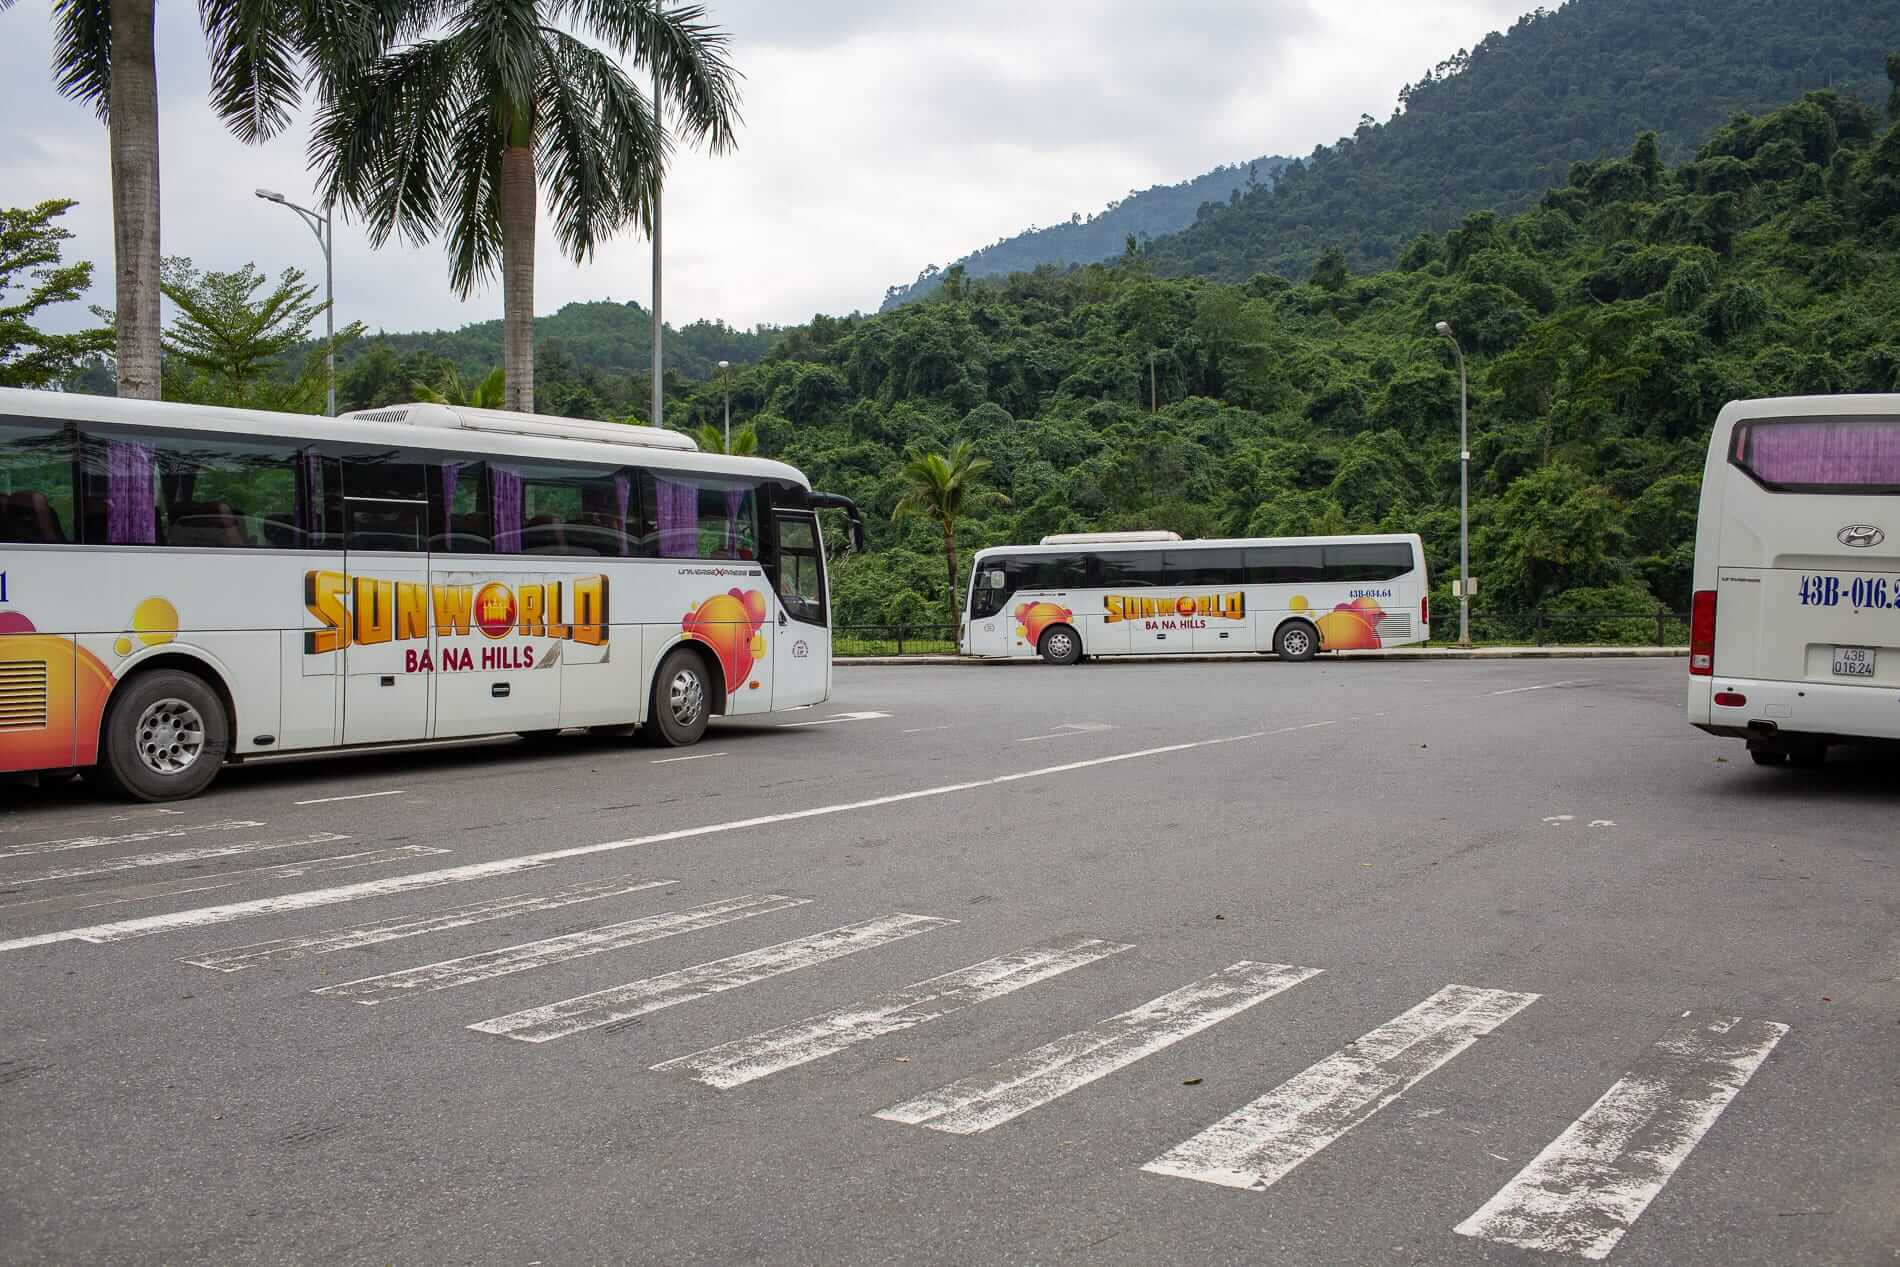 parked buses wait for passengers at Ba Na Hills